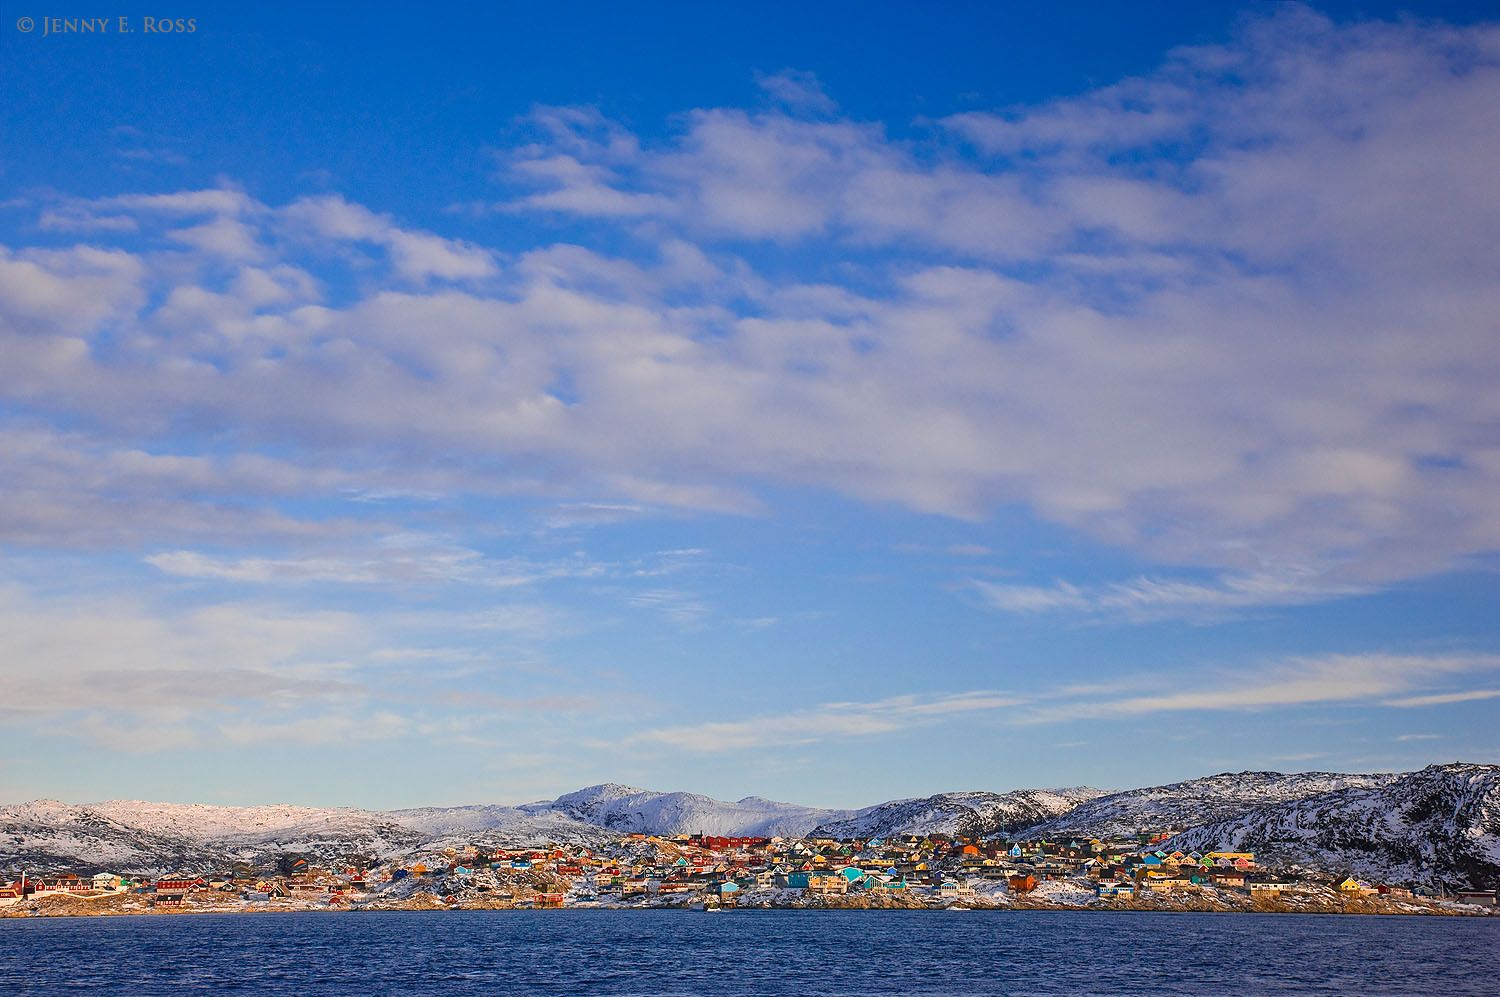 The town of Ilulissat at the edge of Disko Bay, West Greenland